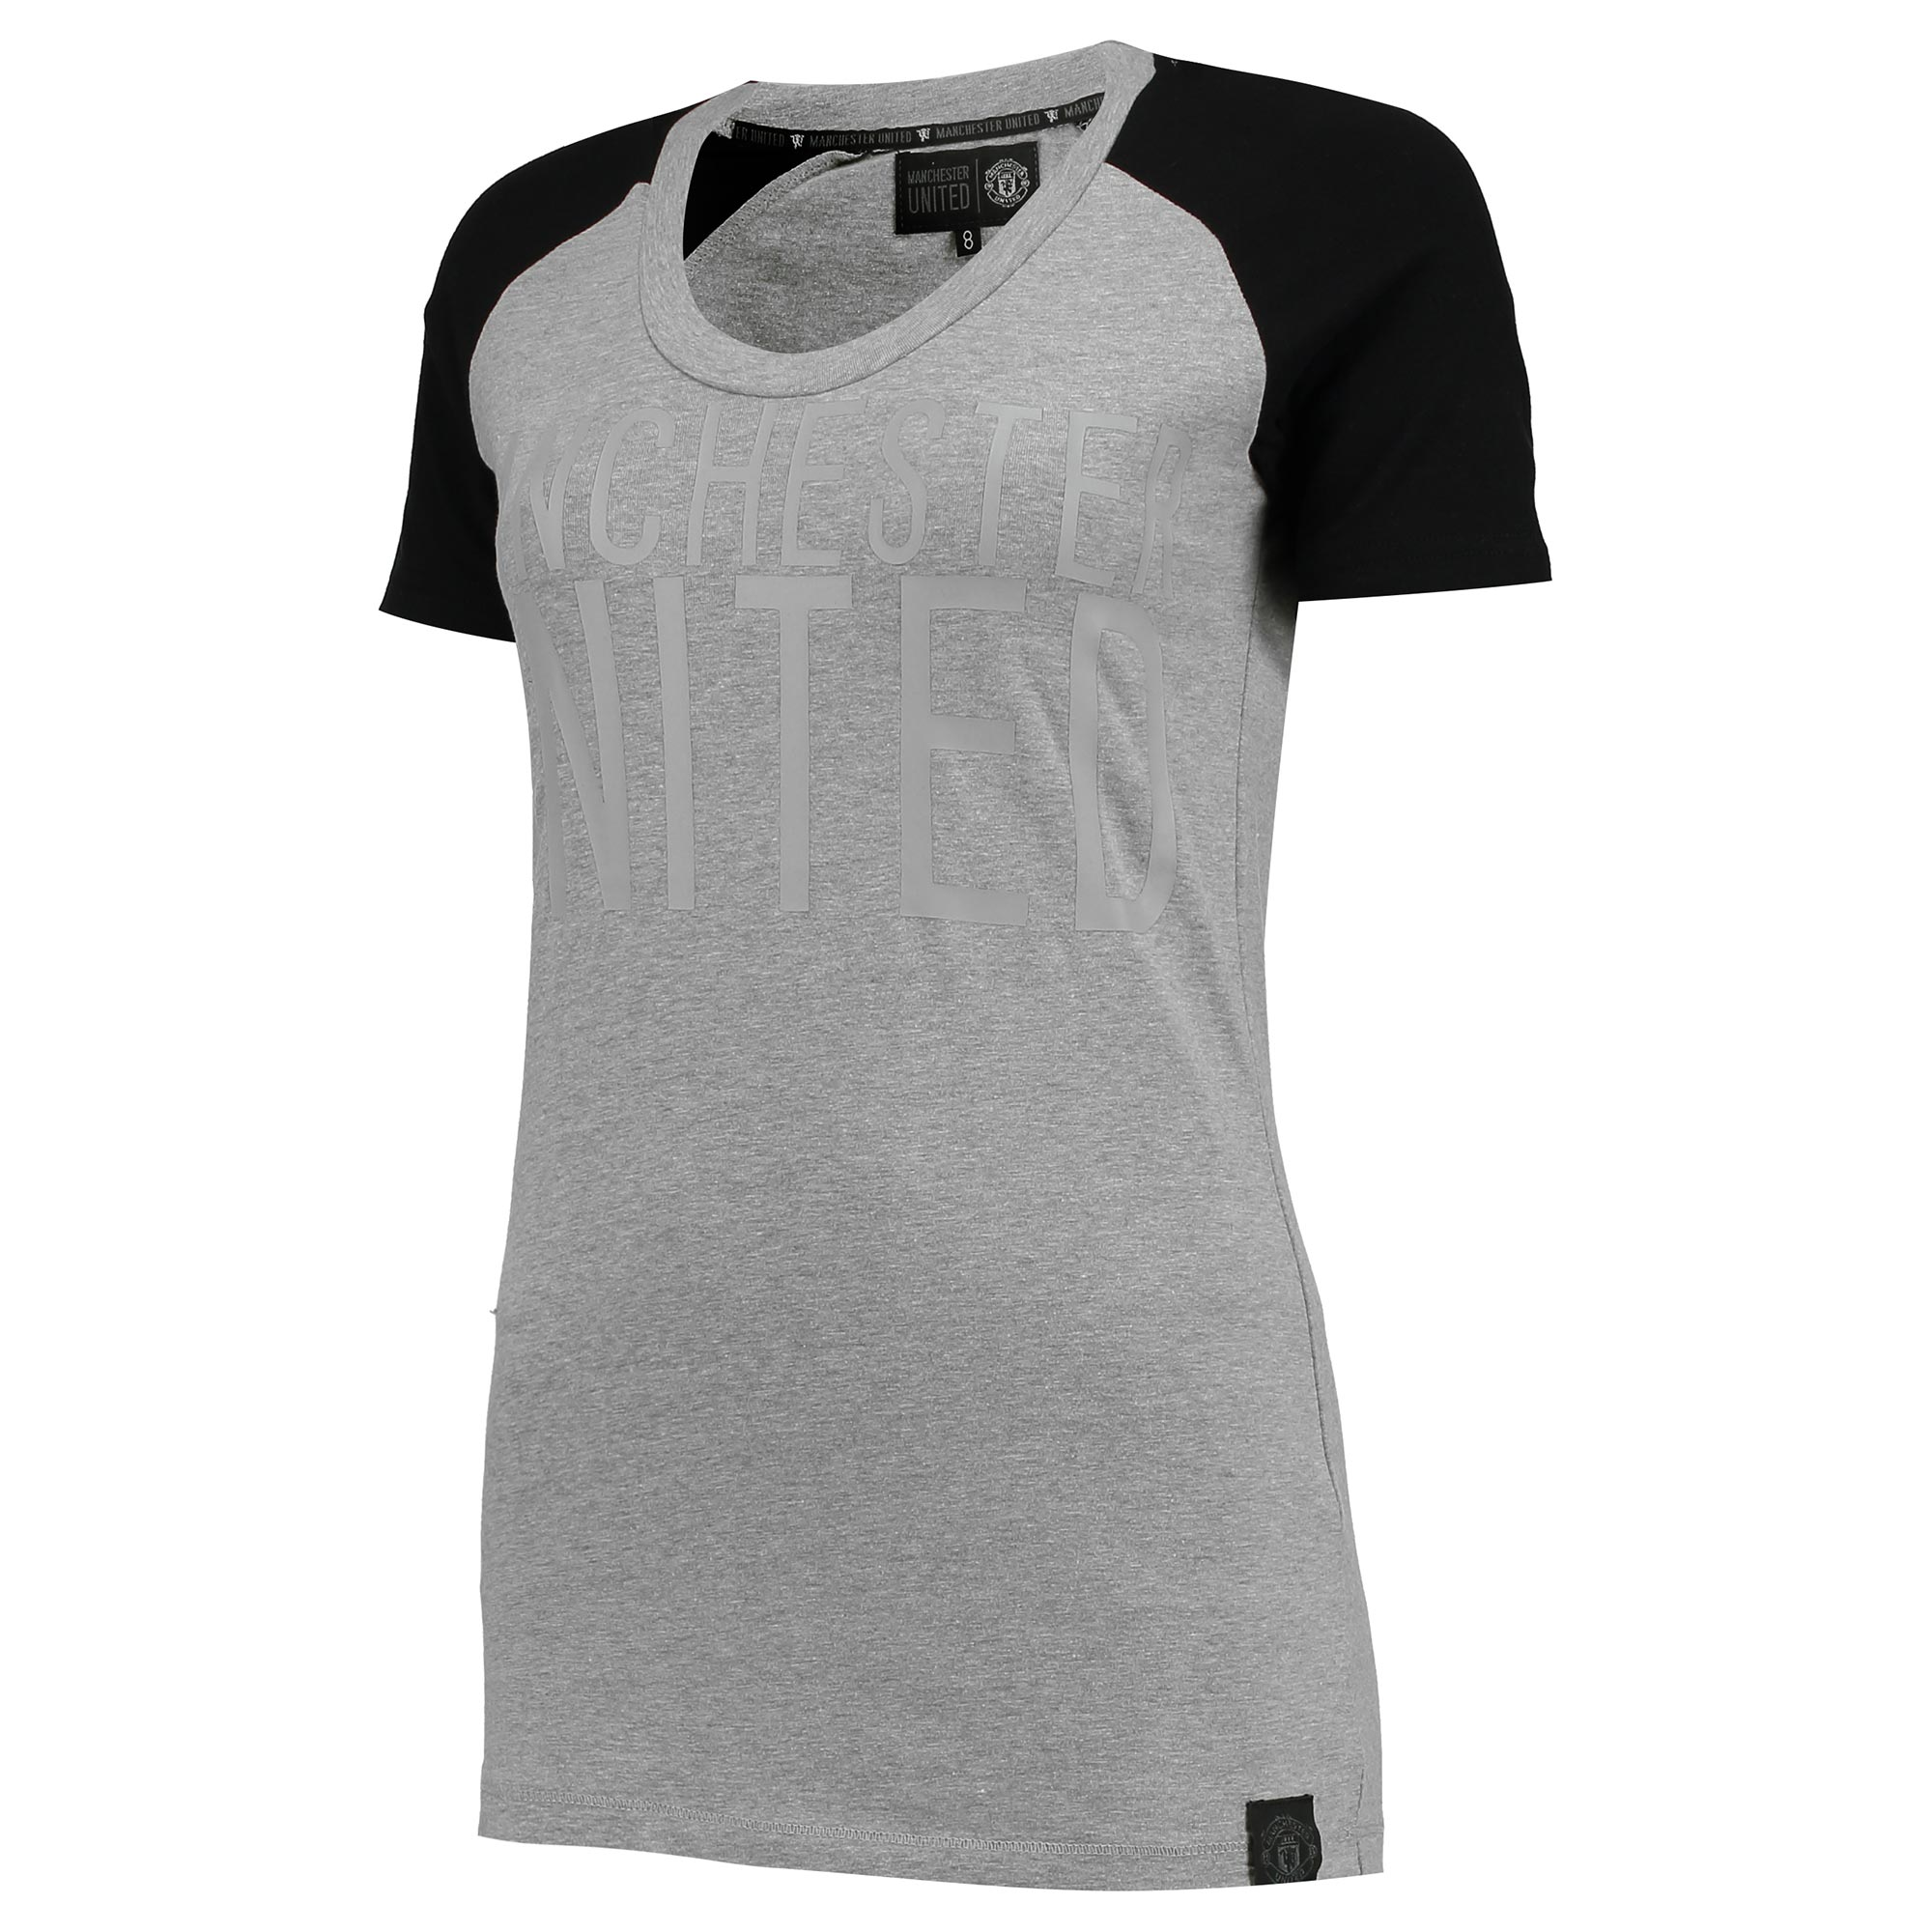 Manchester United Sportswear Crew Neck T-Shirt - Grey - Womens